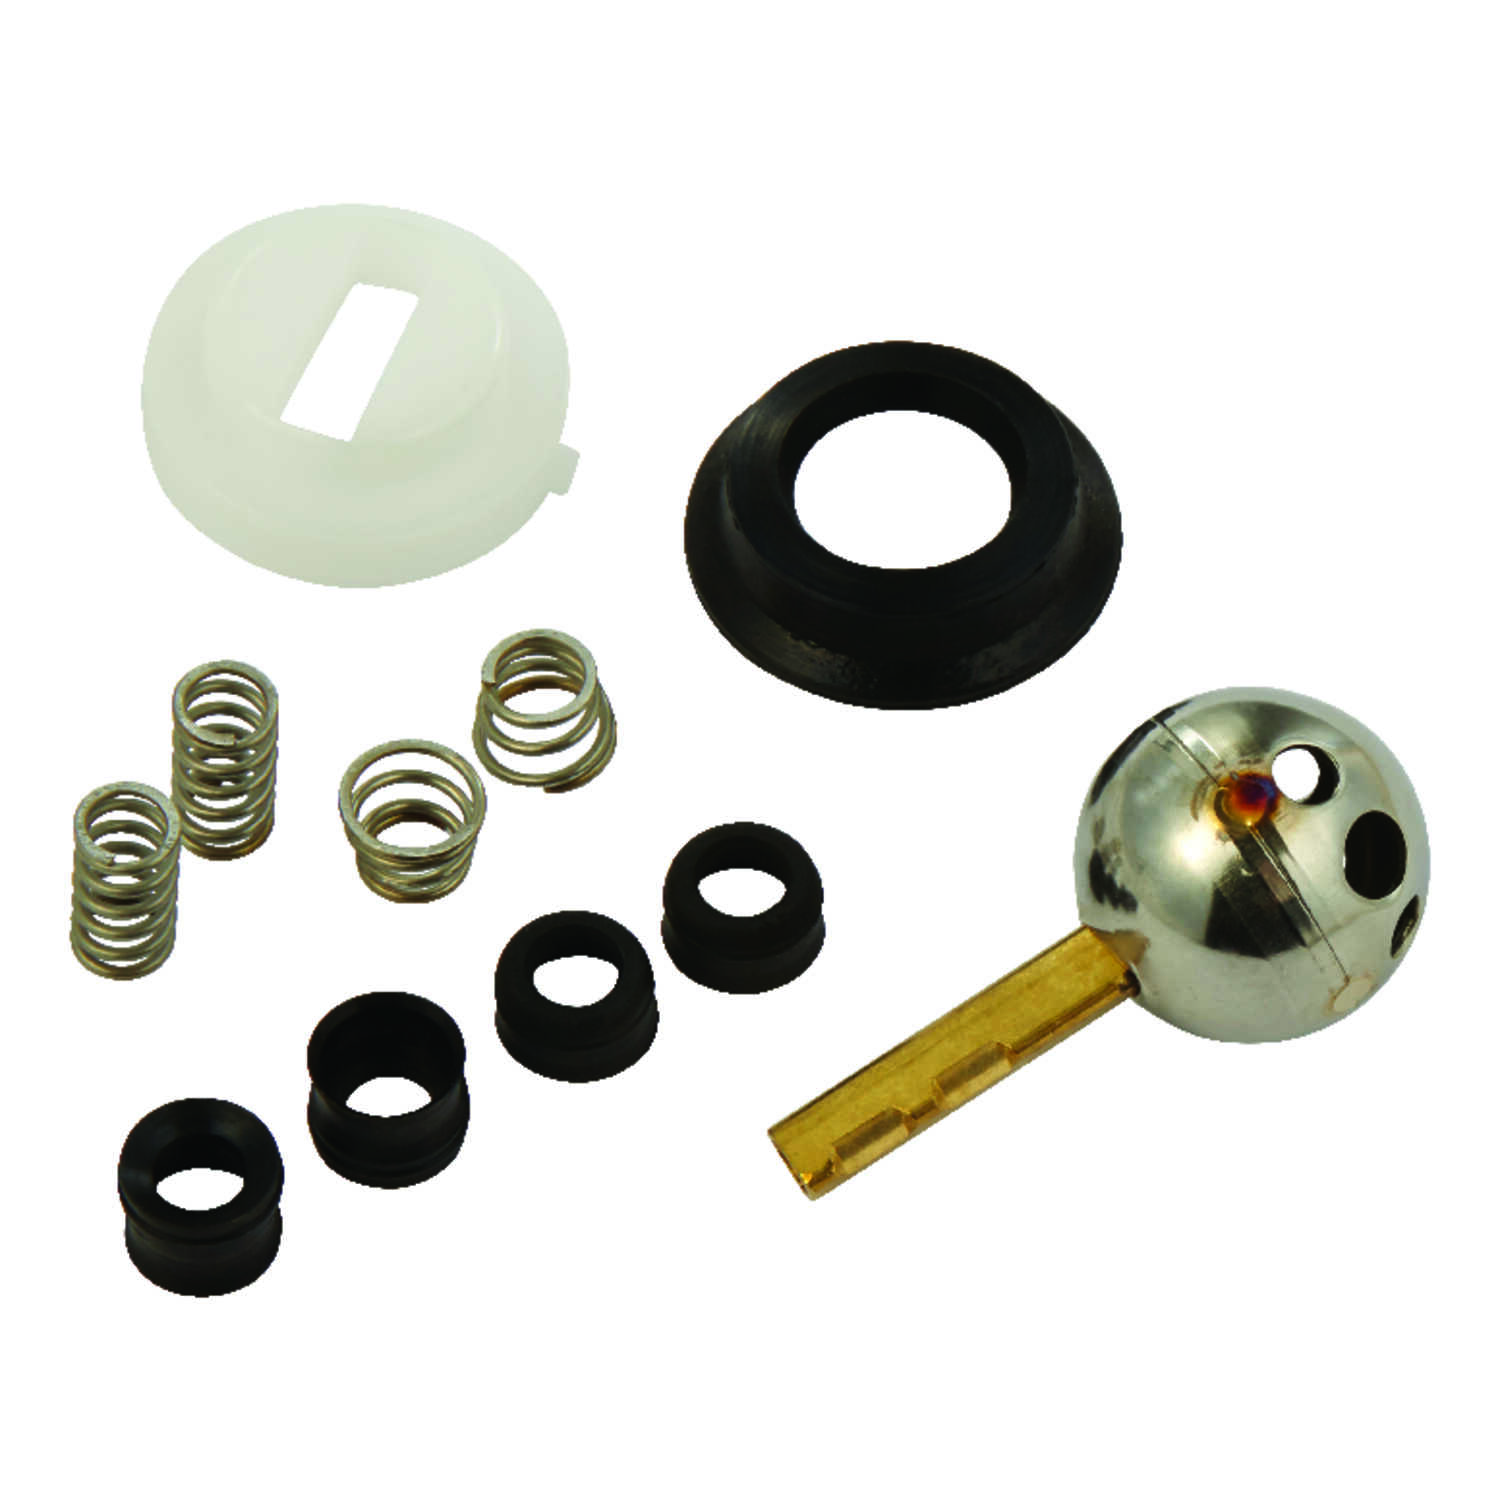 Ace Stainless Steel Faucet Repair Kit For Delta Faucets